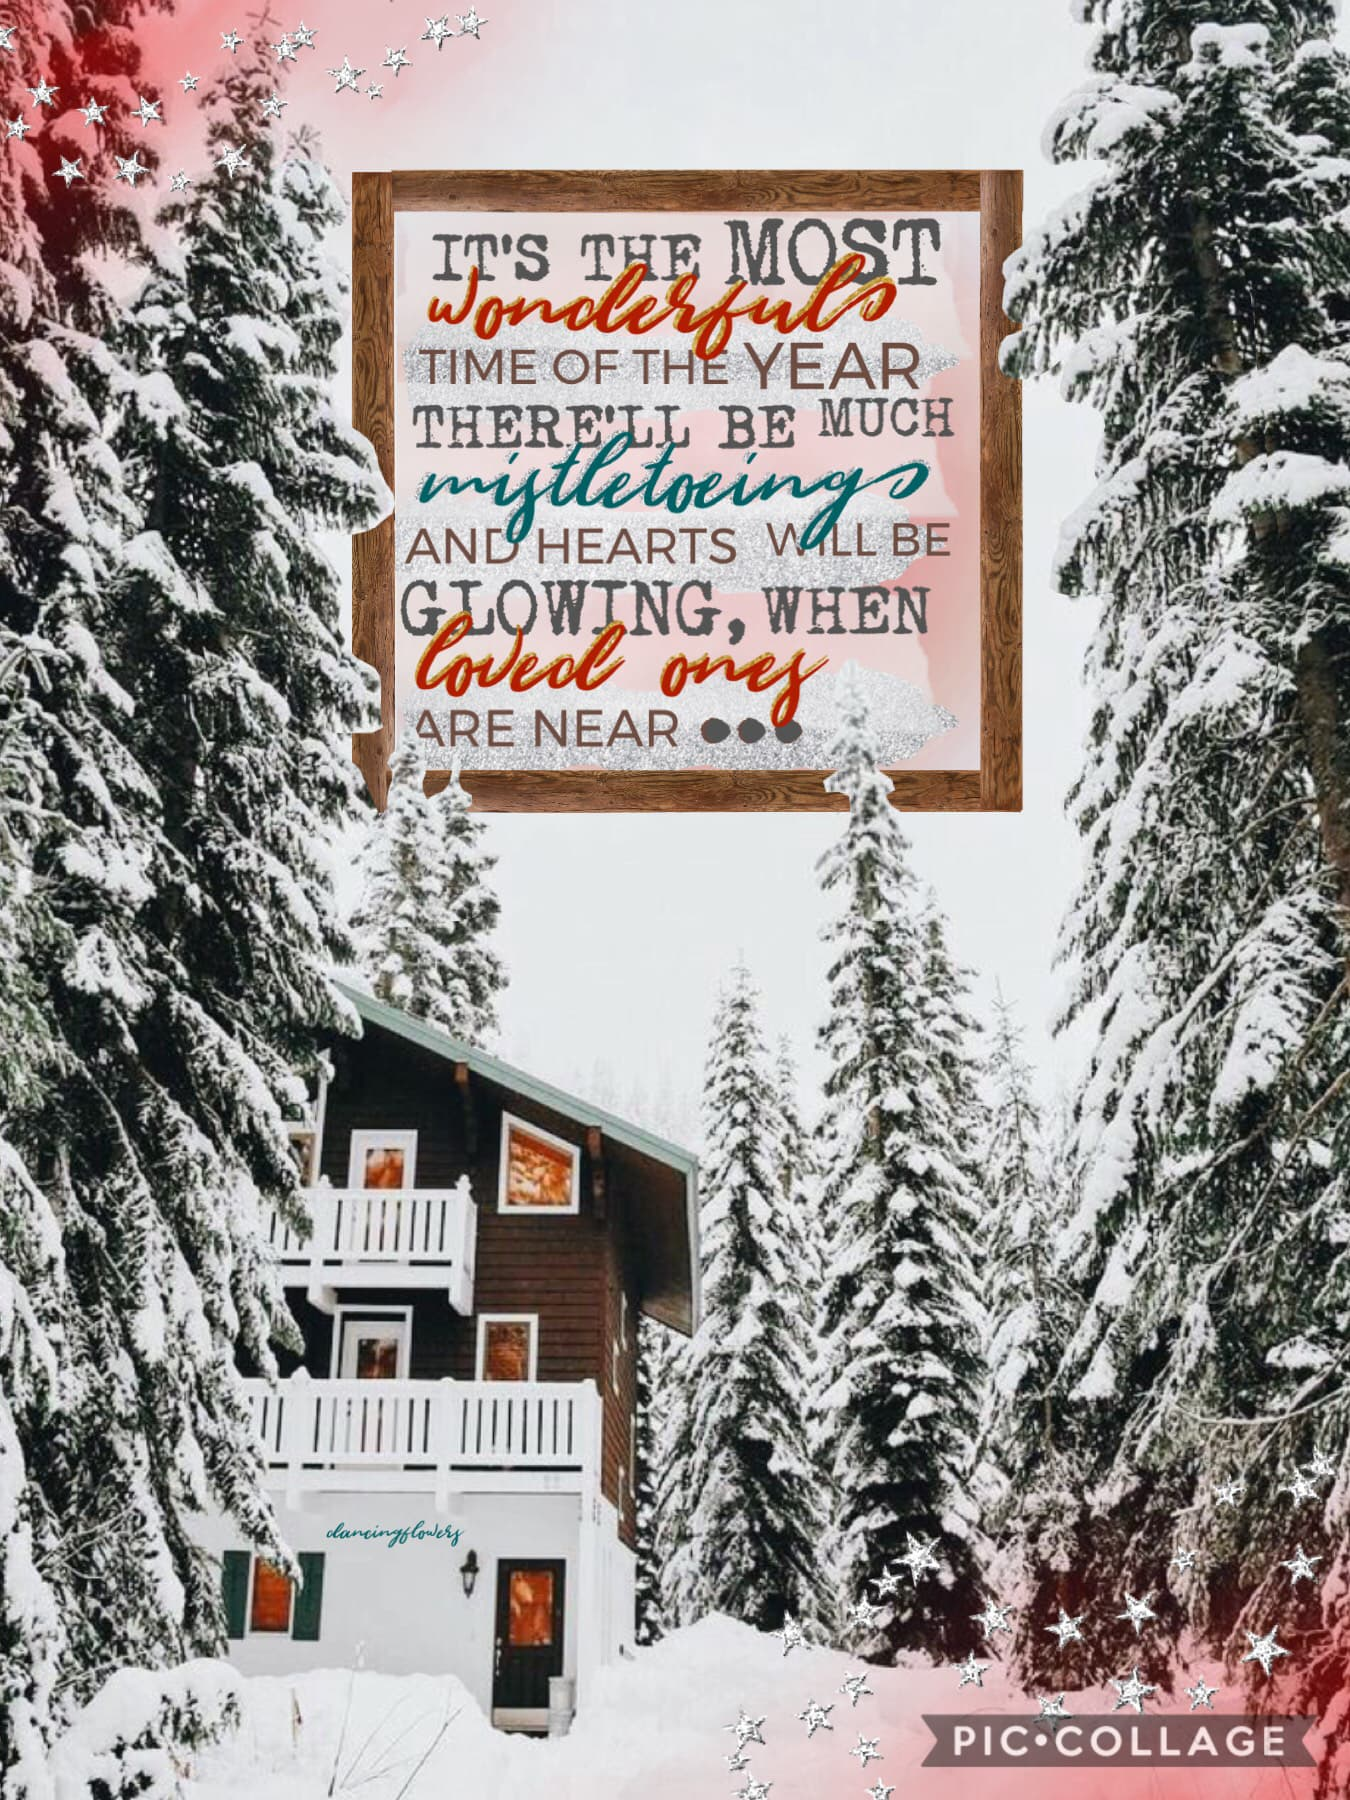 🥰tap🥰 my first collage in a while, not too early for Christmas is it? 😂 also, I am so happy with the new fonts, they are perfect and just what me and many other PicCollagers asked for! What are you all doing for Christmas? 🎄😊